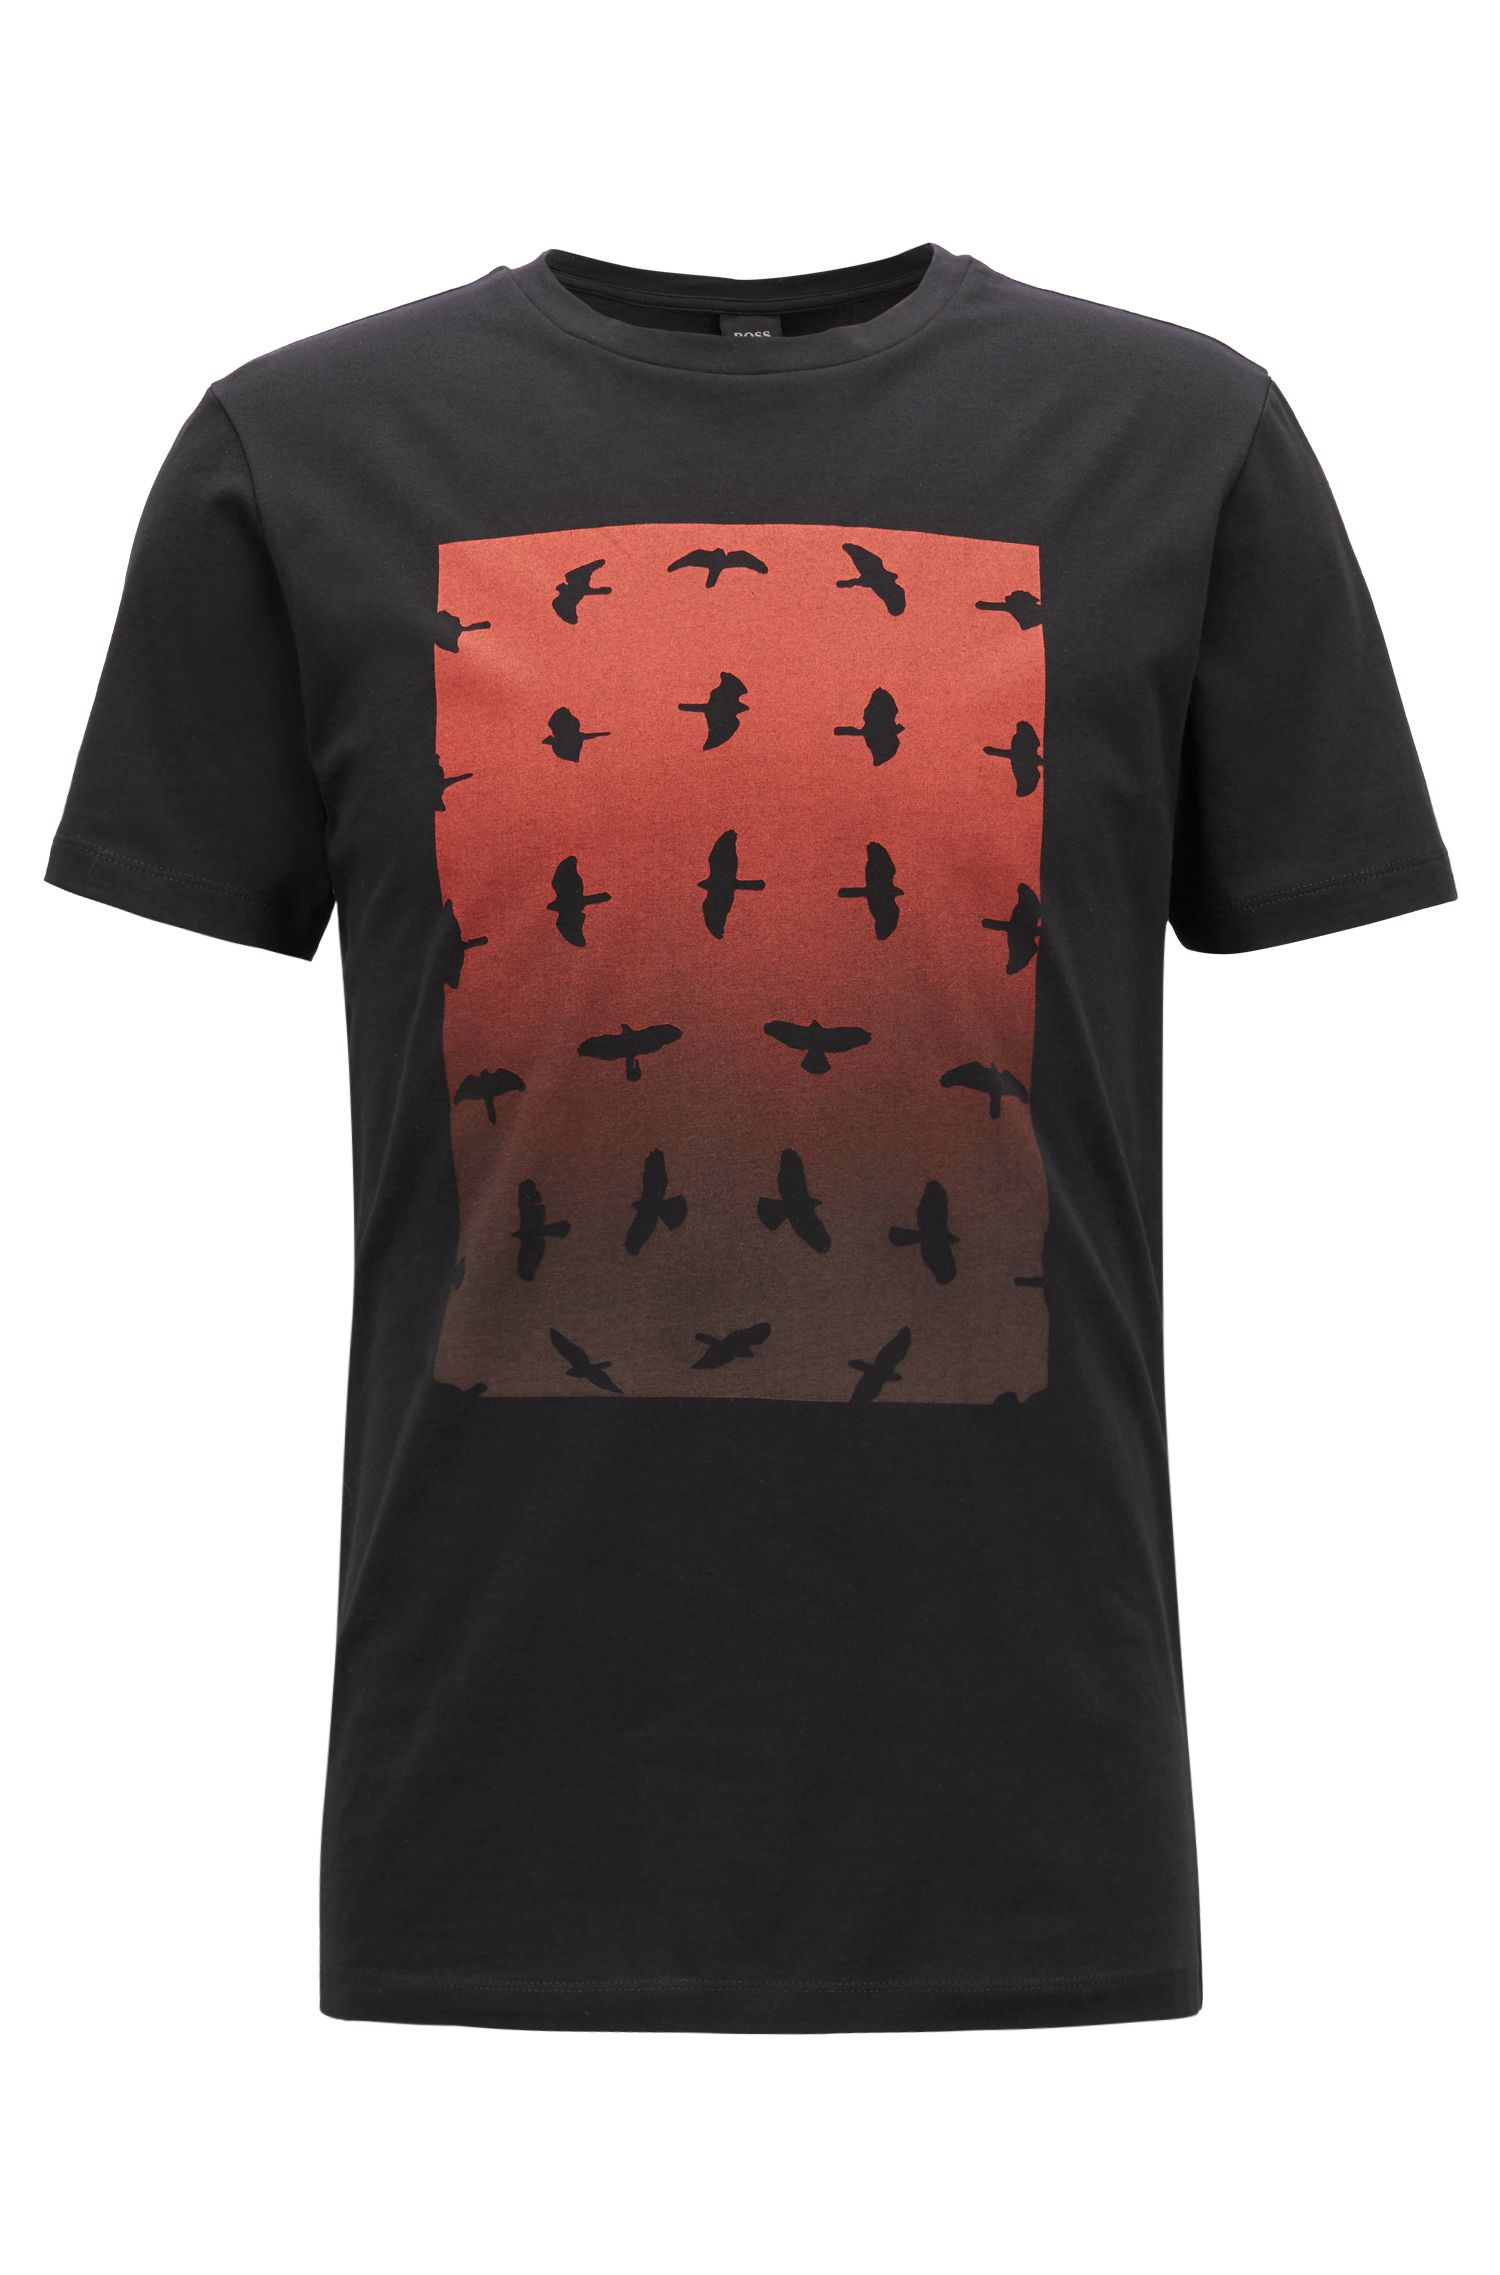 Crew-neck T-shirt with water-based graphic print, Black